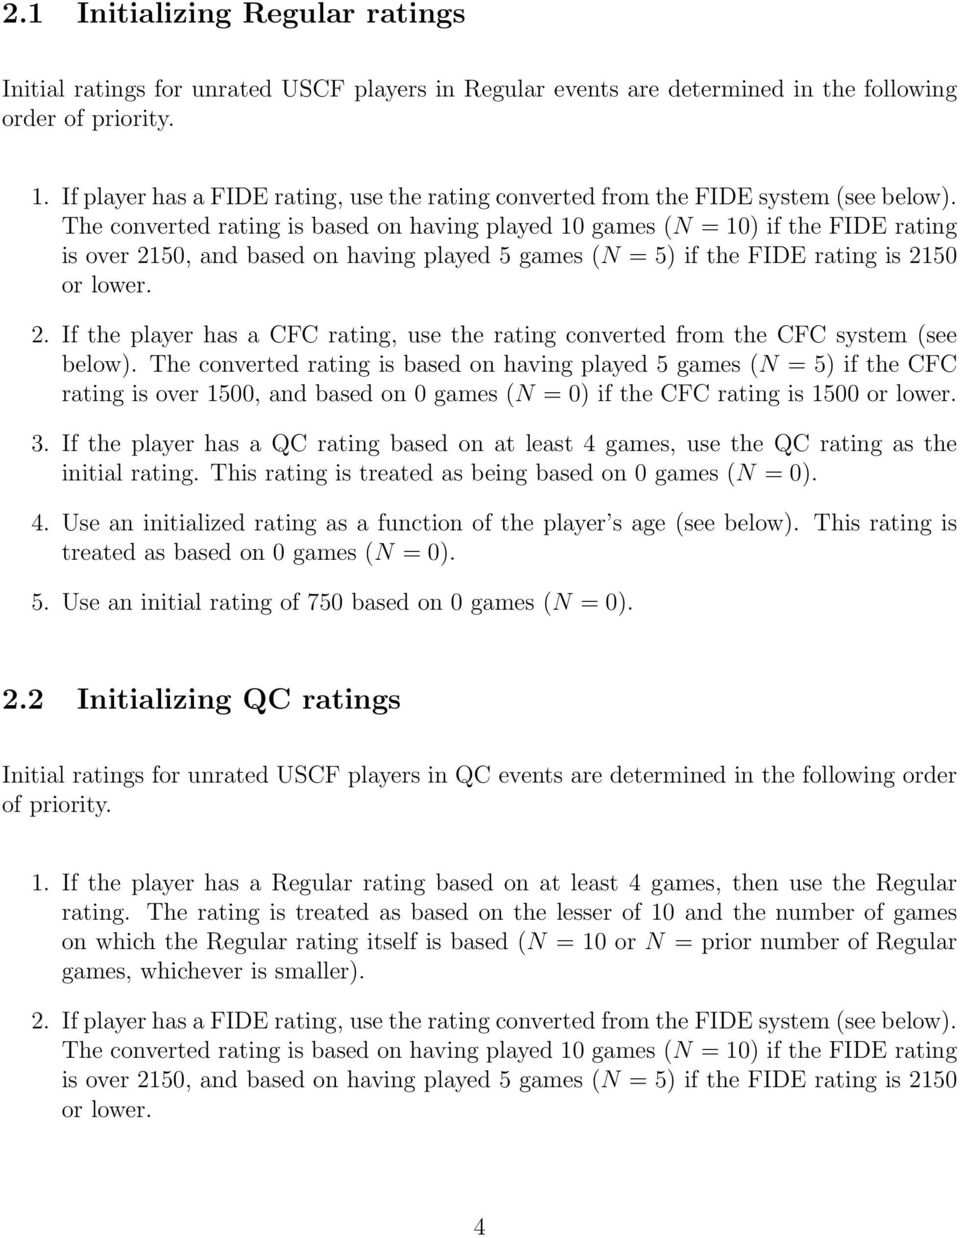 The converted rating is based on having played 10 games (N = 10) if the FIDE rating is over 2150, and based on having played 5 games (N = 5) if the FIDE rating is 2150 or lower. 2. If the player has a CFC rating, use the rating converted from the CFC system (see below).